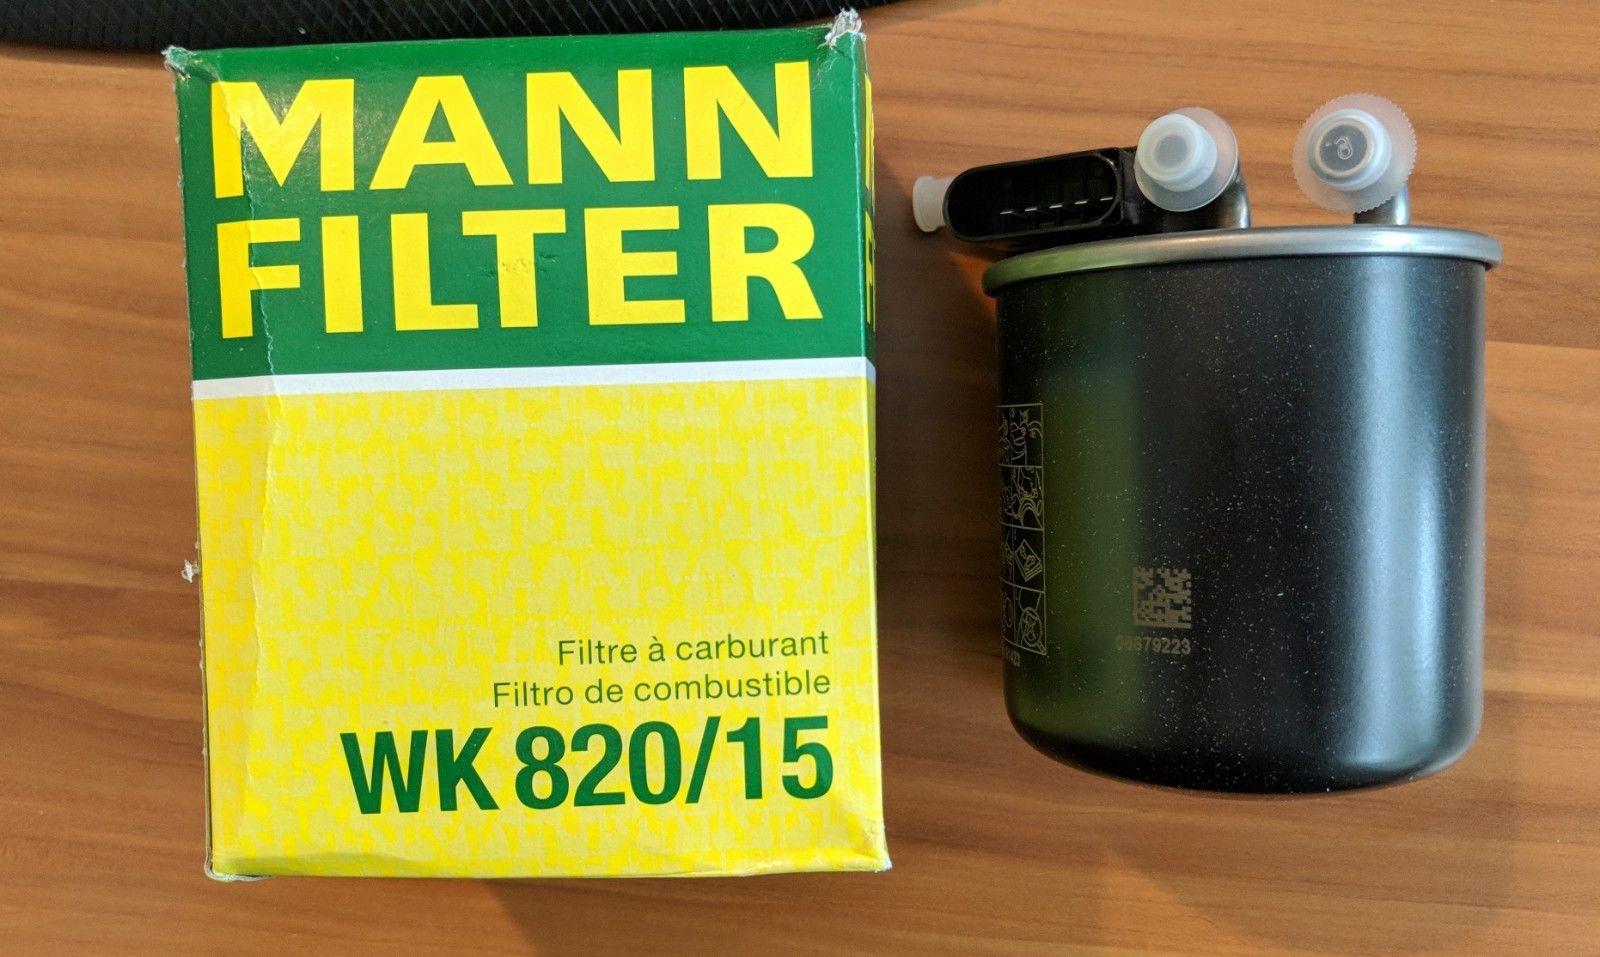 Awesome Mercedes Benz Sprinter Fuel Filter 5 Pin Oem Mann Wk 820 15 Item Specifics